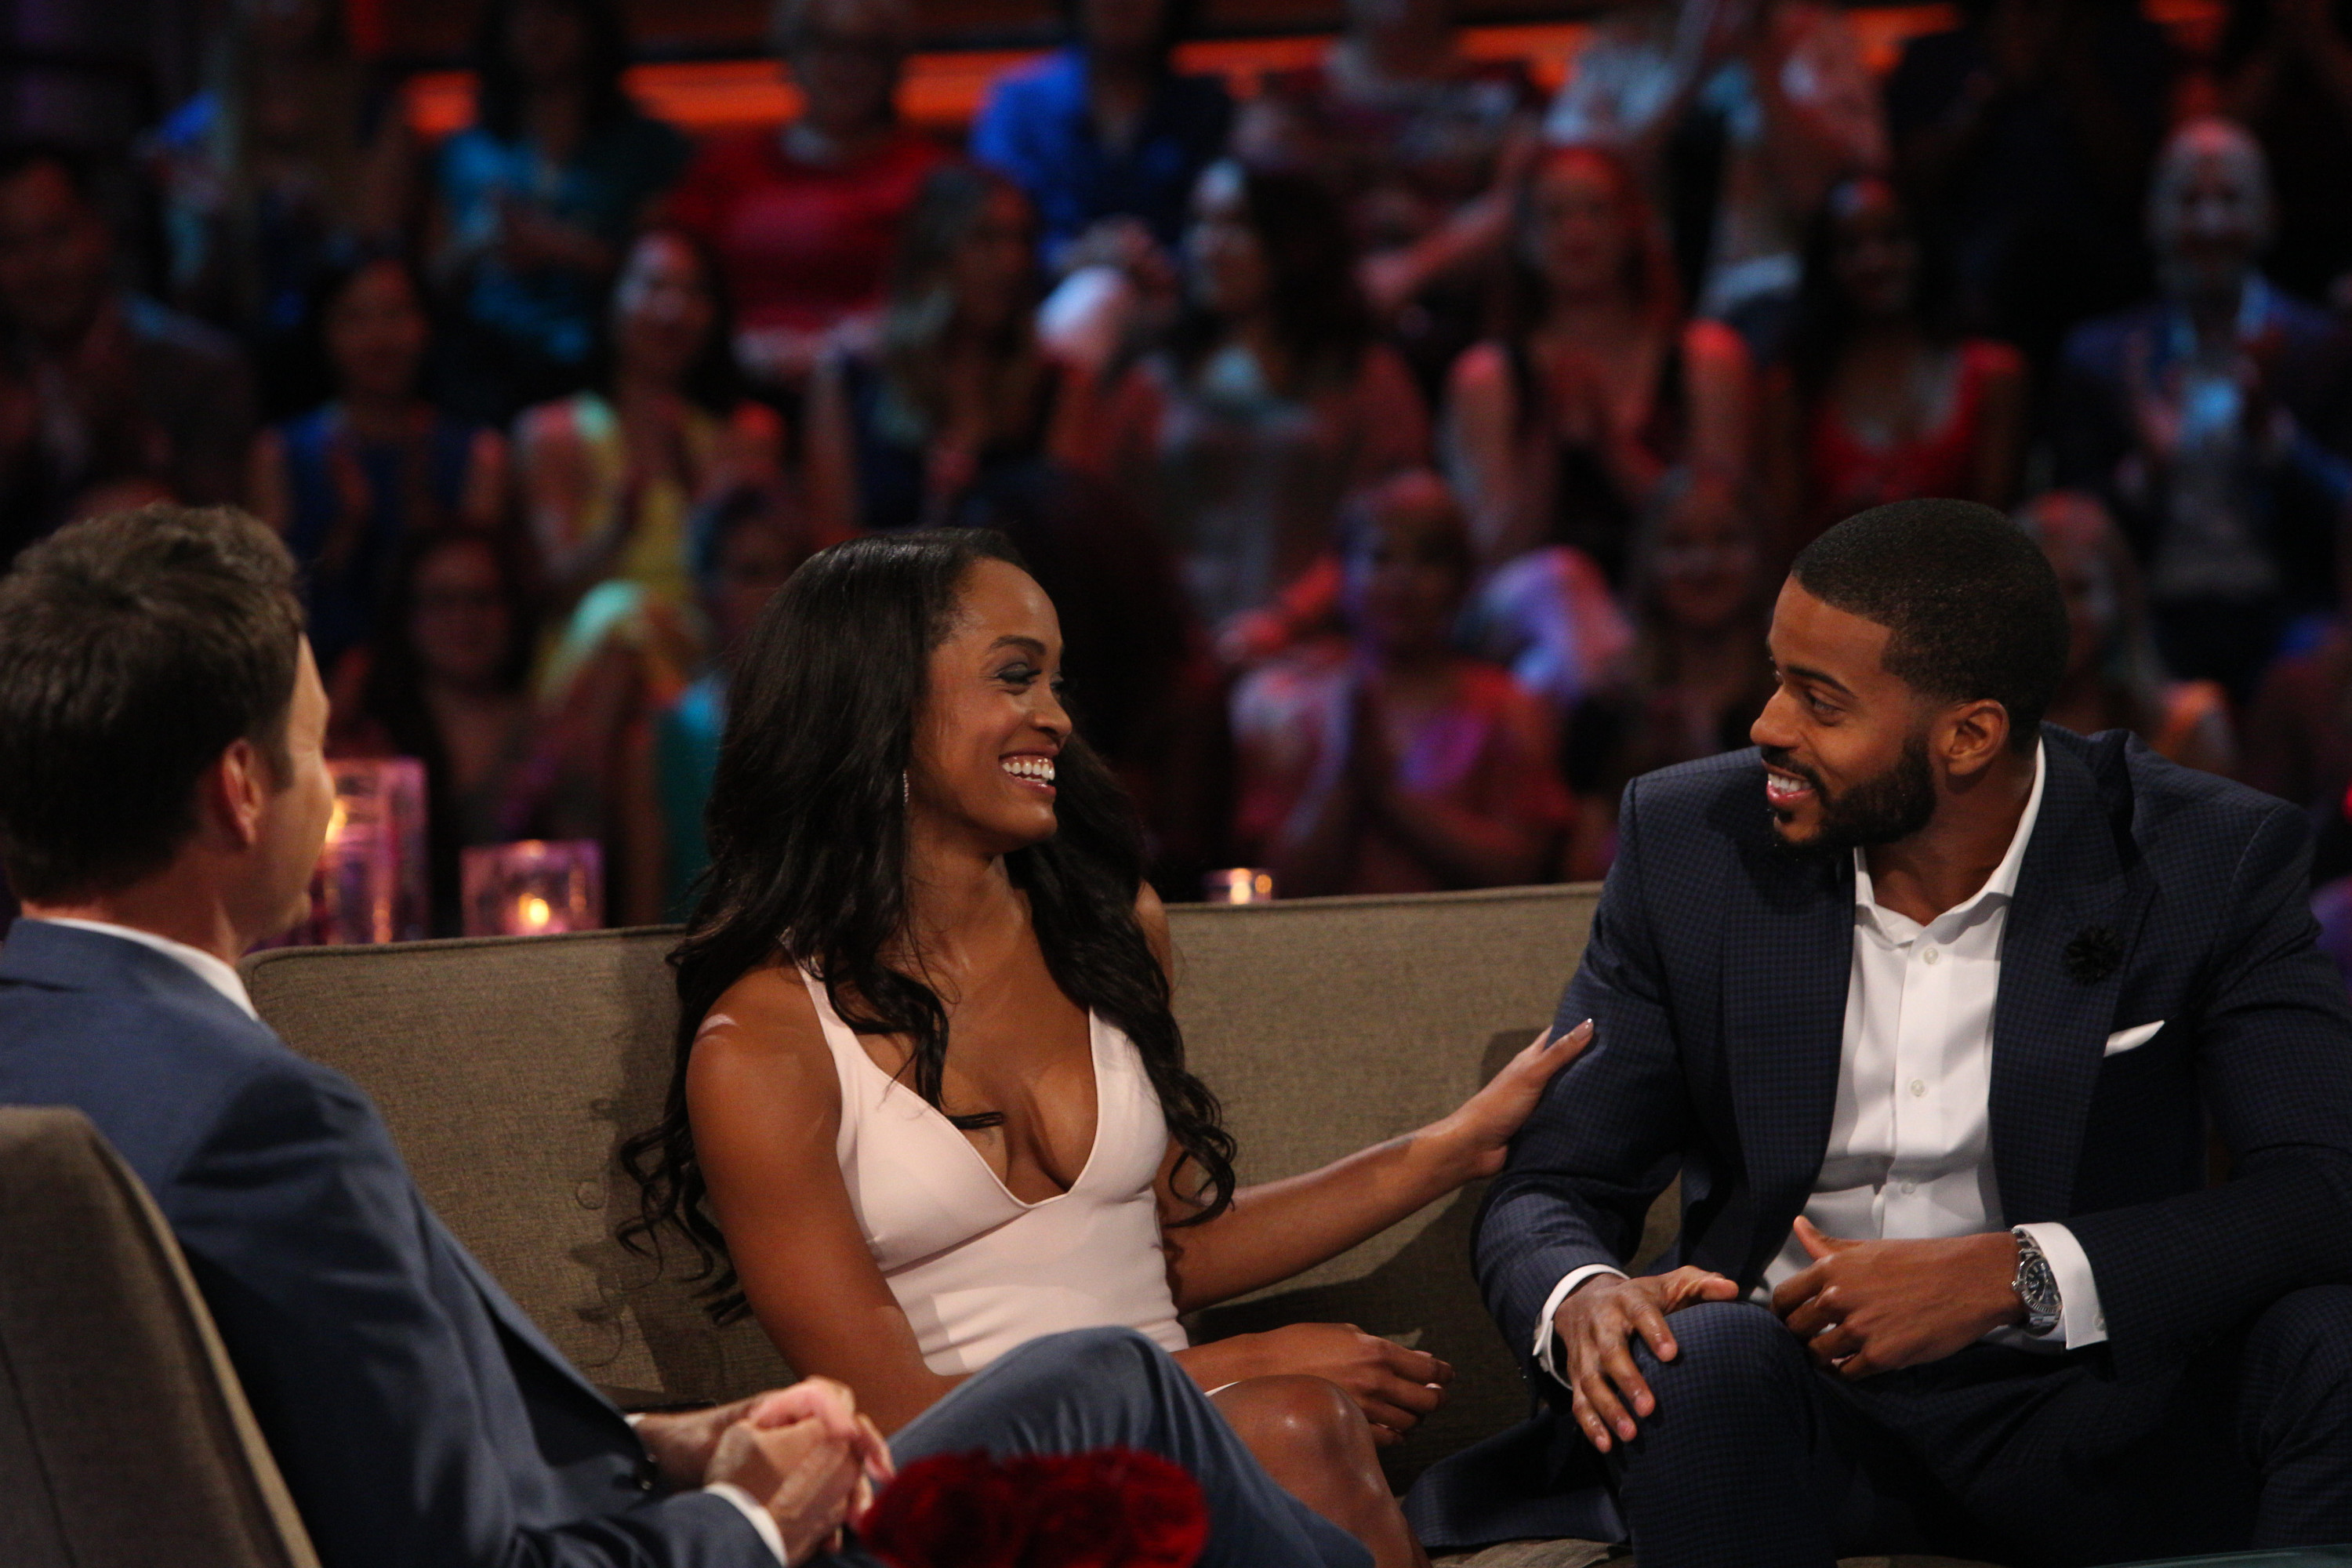 THE BACHELORETTE - ÒEpisode 1310Ó - Season Finale - It didnÕt take long for Rachel Lindsay to rebound from her surprising, gut-wrenching rejection by Nick Viall and capture the hearts of America, as well as this seasonÕs 31 eligible bachelors. Now after surviving shocking twists and turns and a journey filled with laughter, tears, love and controversy, Rachel has narrowed down the field to Bryan, Eric and Peter. She finds herself falling in love with all three of these captivating men and terribly torn between them. She can envision a future with all of these bachelors, but time is running out. In a live, three-hour special, Chris Harrison takes Rachel and Bachelor Nation back to those final days in Rioja, Spain, to discuss the difficult choices she made along the way. Her three suitors will join them throughout the live special, on ÒThe Bachelorette: The Three Hour Live Finale,Ó airing MONDAY, AUGUST 7 (8:00-11:00 p.m. EDT), on The ABC Television Network. (ABC/Paul Hebert) CHRIS HARRISON, RACHEL LINDSAY, ERIC BIGGER